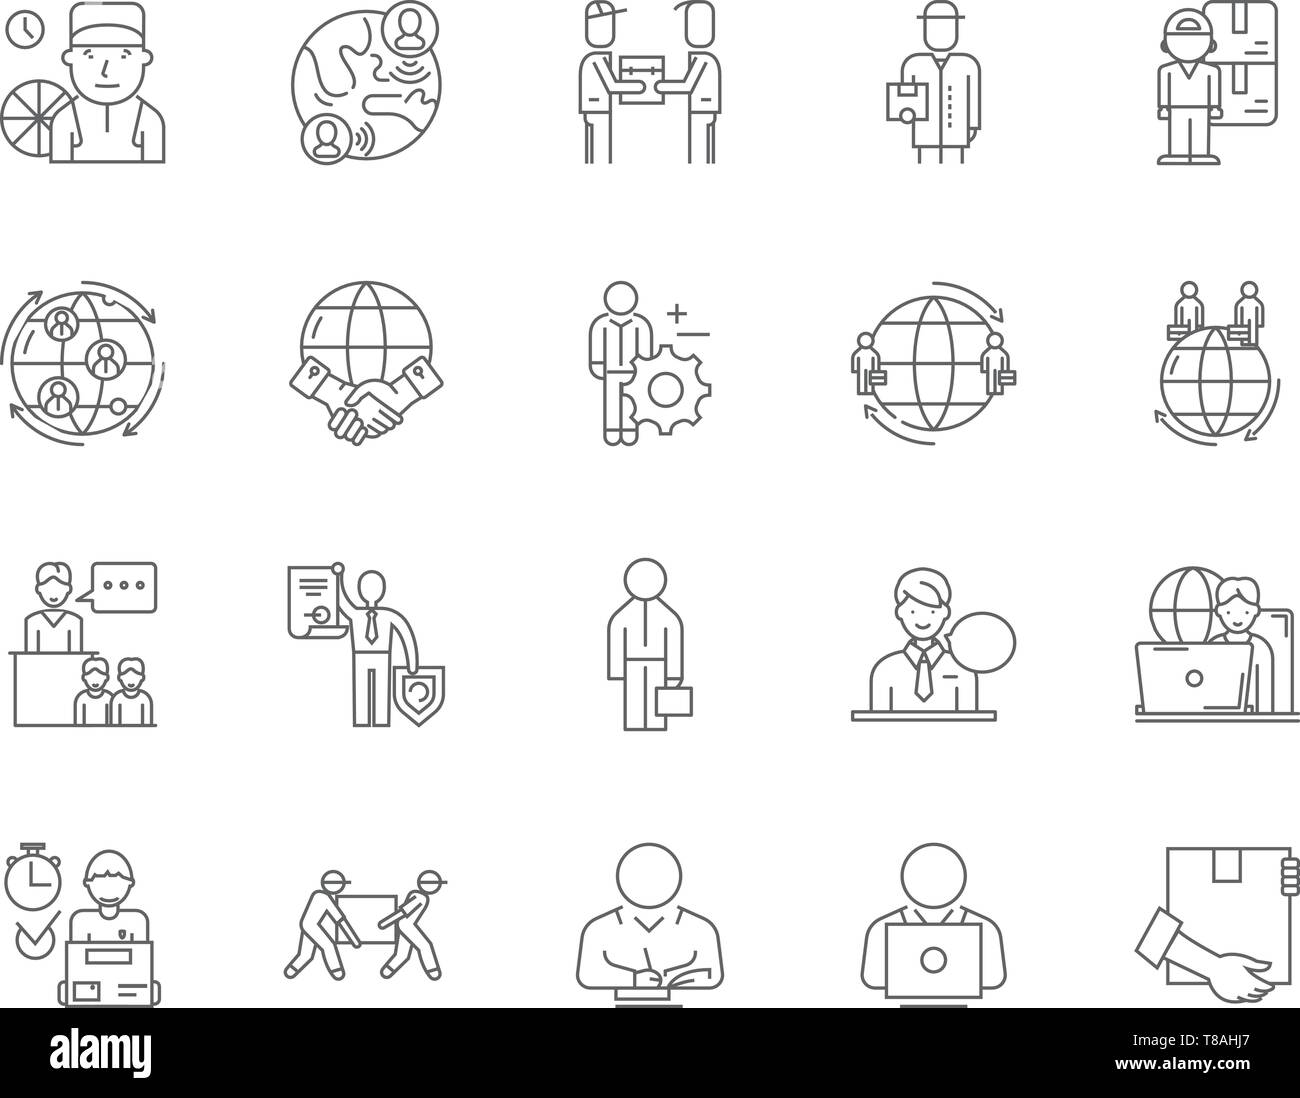 Export agents line icons, signs, vector set, outline illustration concept  - Stock Vector